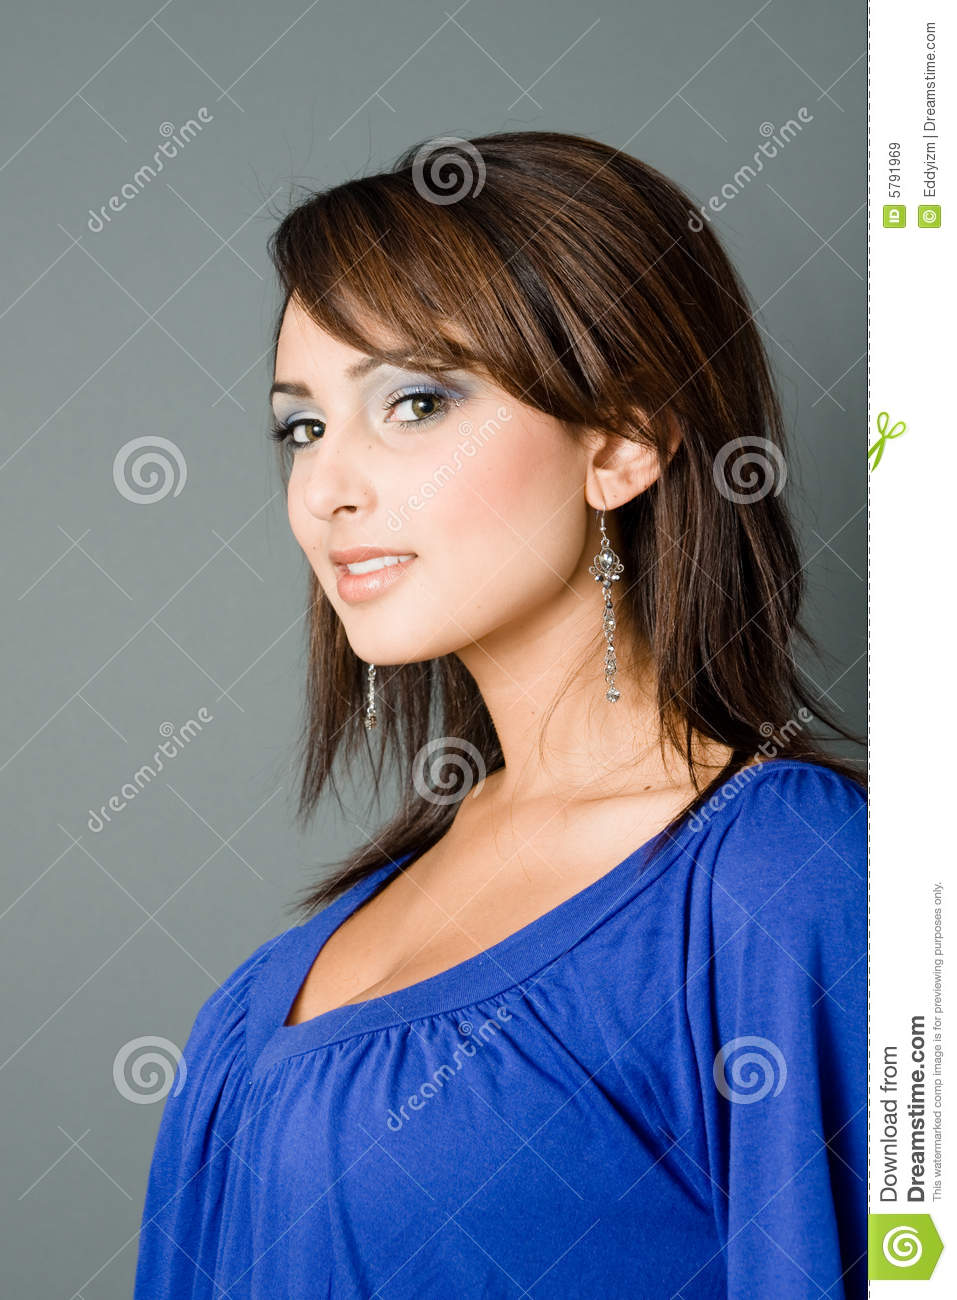 Remarkable idea busty mexican woman can